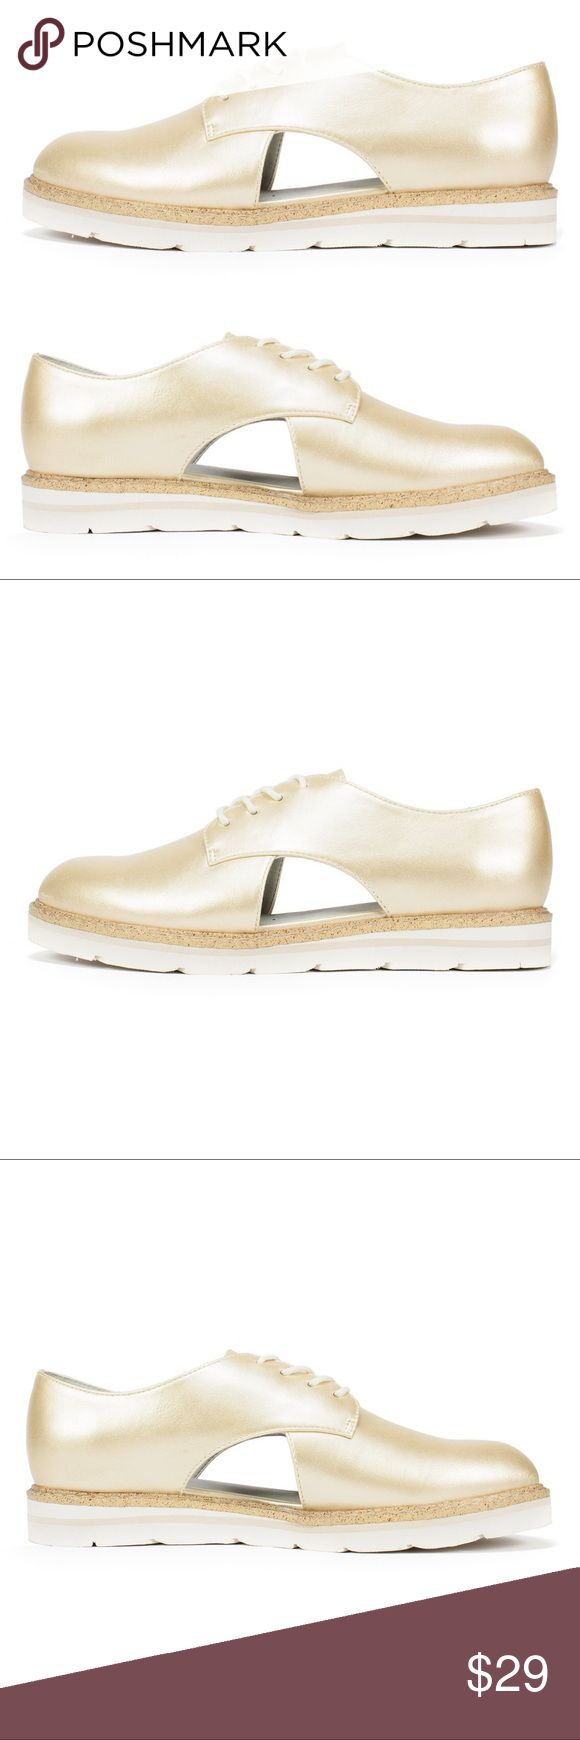 🍀 White Mountain cut out gold Oxford shoes 9 10 Brand new with tags, White Mountain gold cut out Timmy Oxford lace up shoes. Sizes 9 & 10 left. Wear with fun socks or ankle length trousers. Check out my other listings to bundle and SAVE! **Note: while these are new and never worn, the soles are dusty (prob from being tried on in store), if this will prevent you from giving me a 5 star rating, please skip this purchase. White Mountain Shoes Platforms